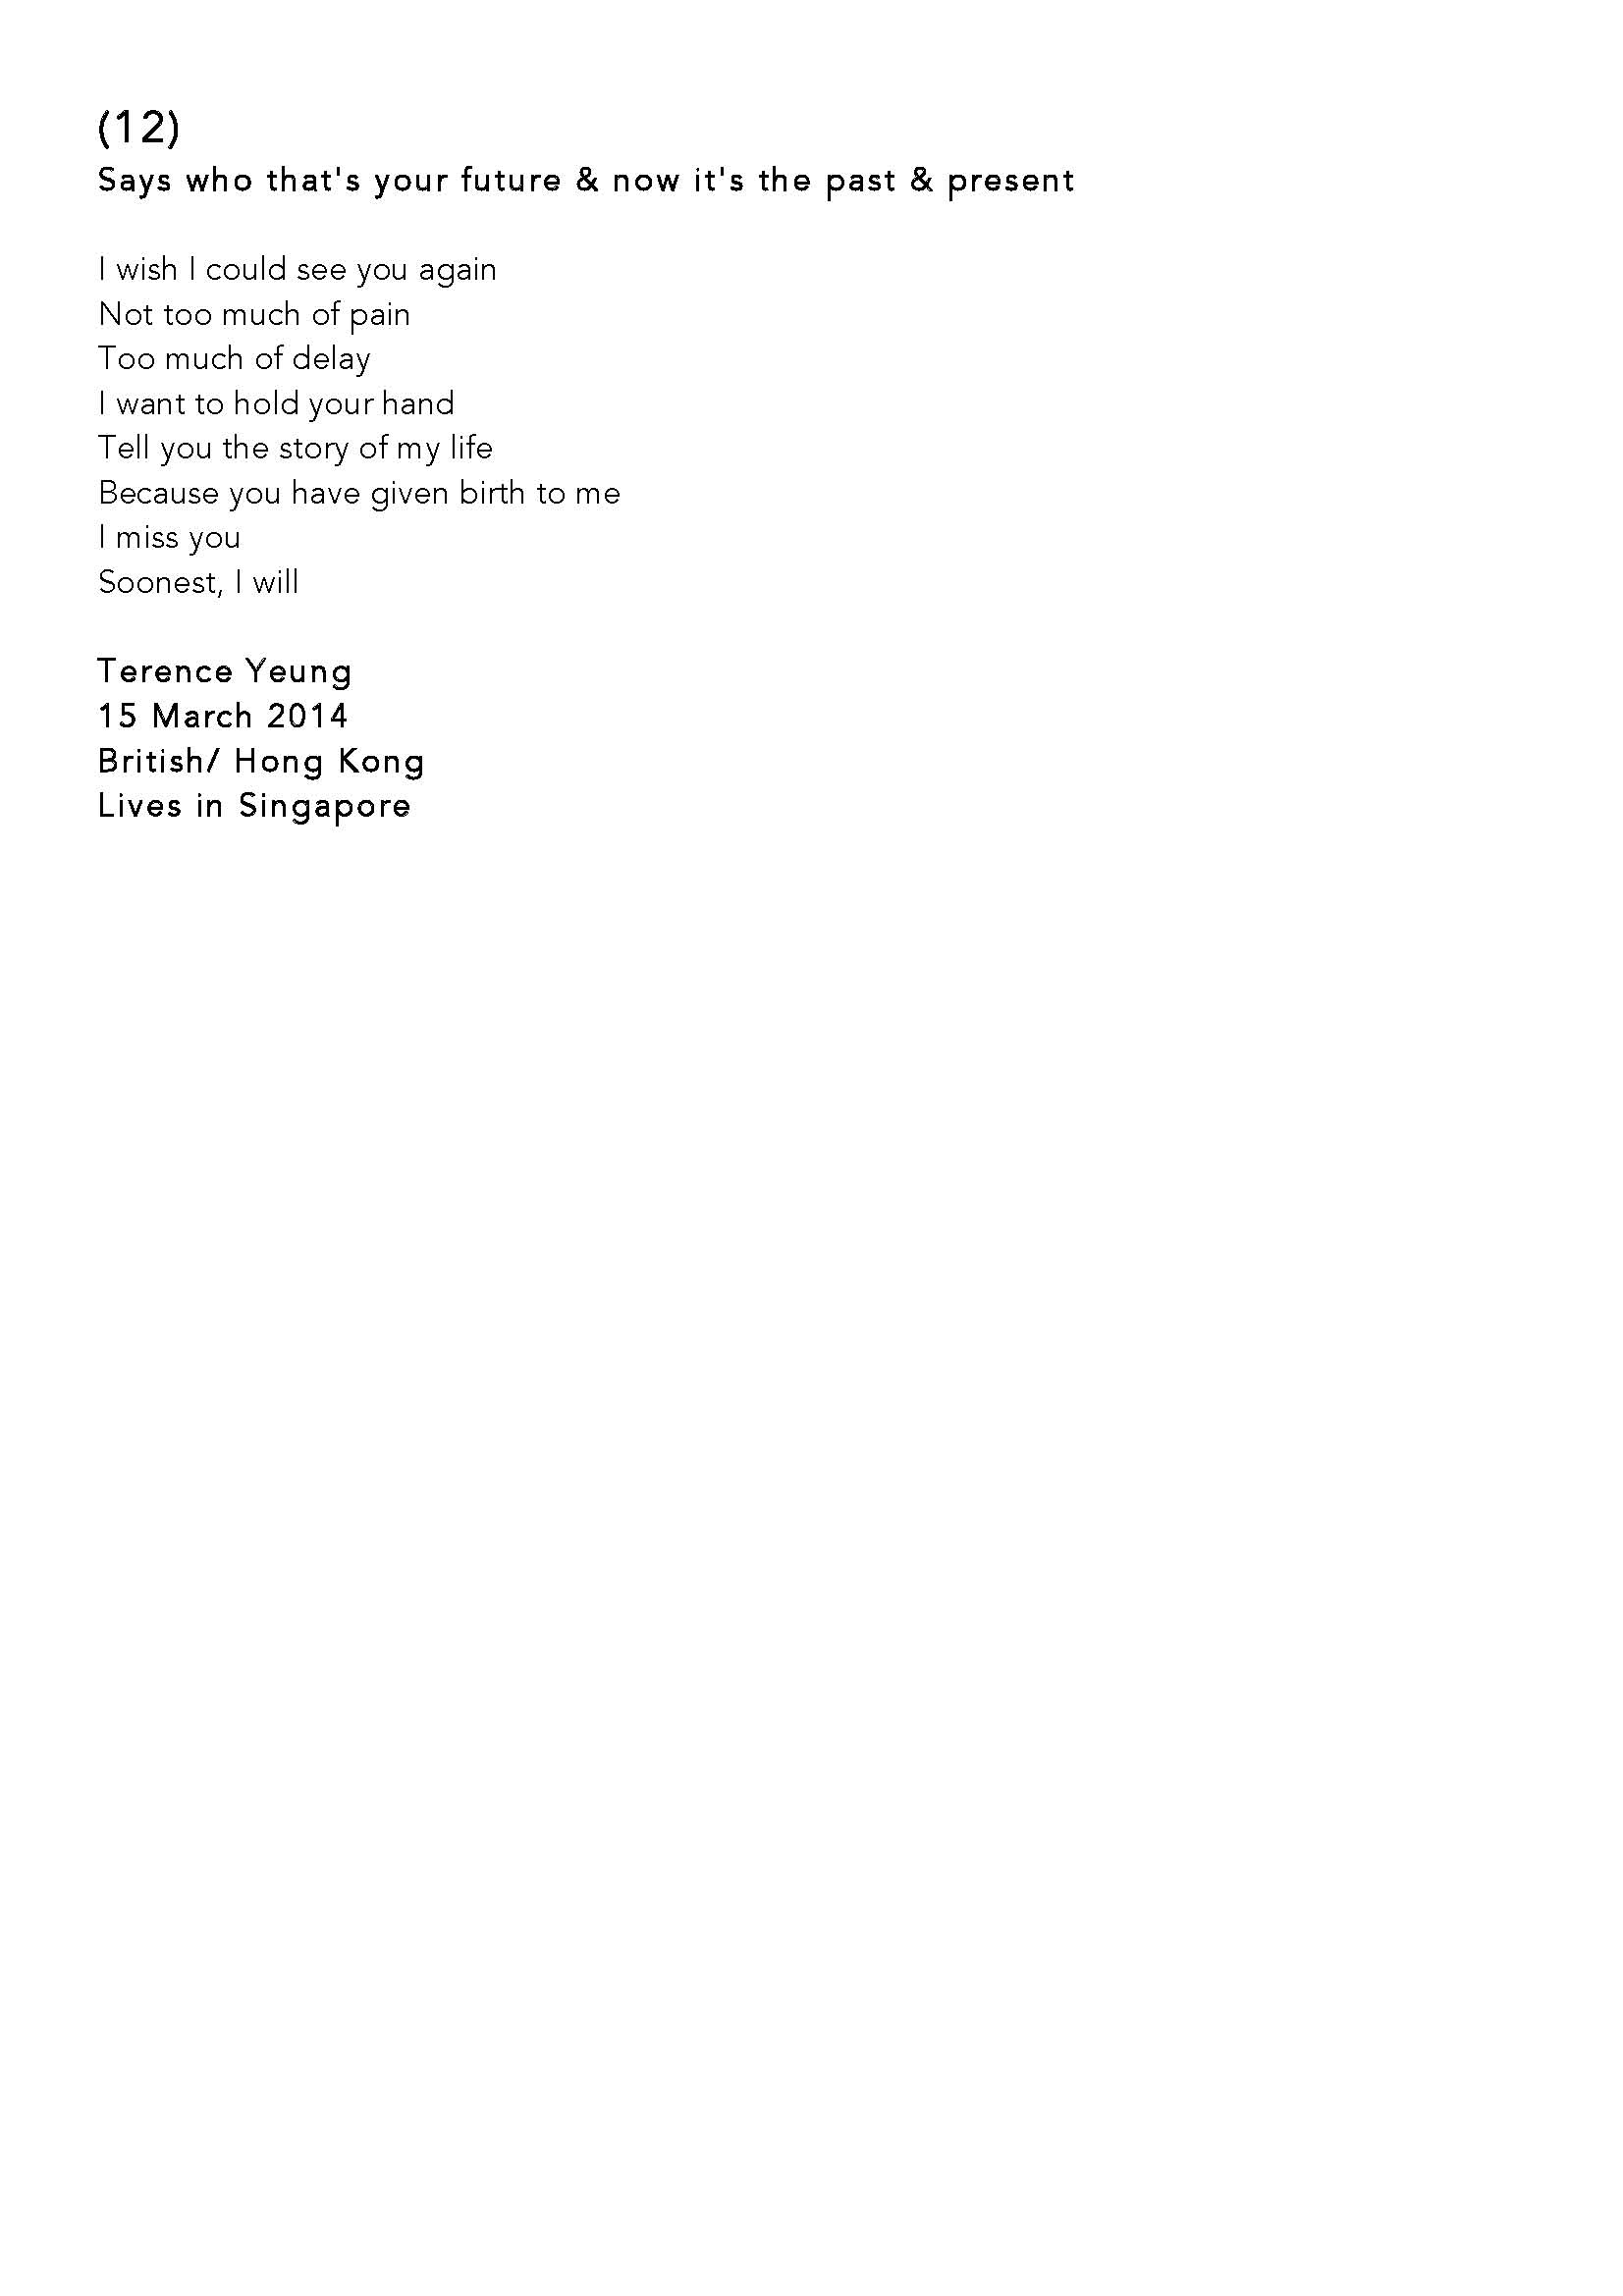 Poetry Collection - Everyone can Poetry_March 2014_Page_12.jpg